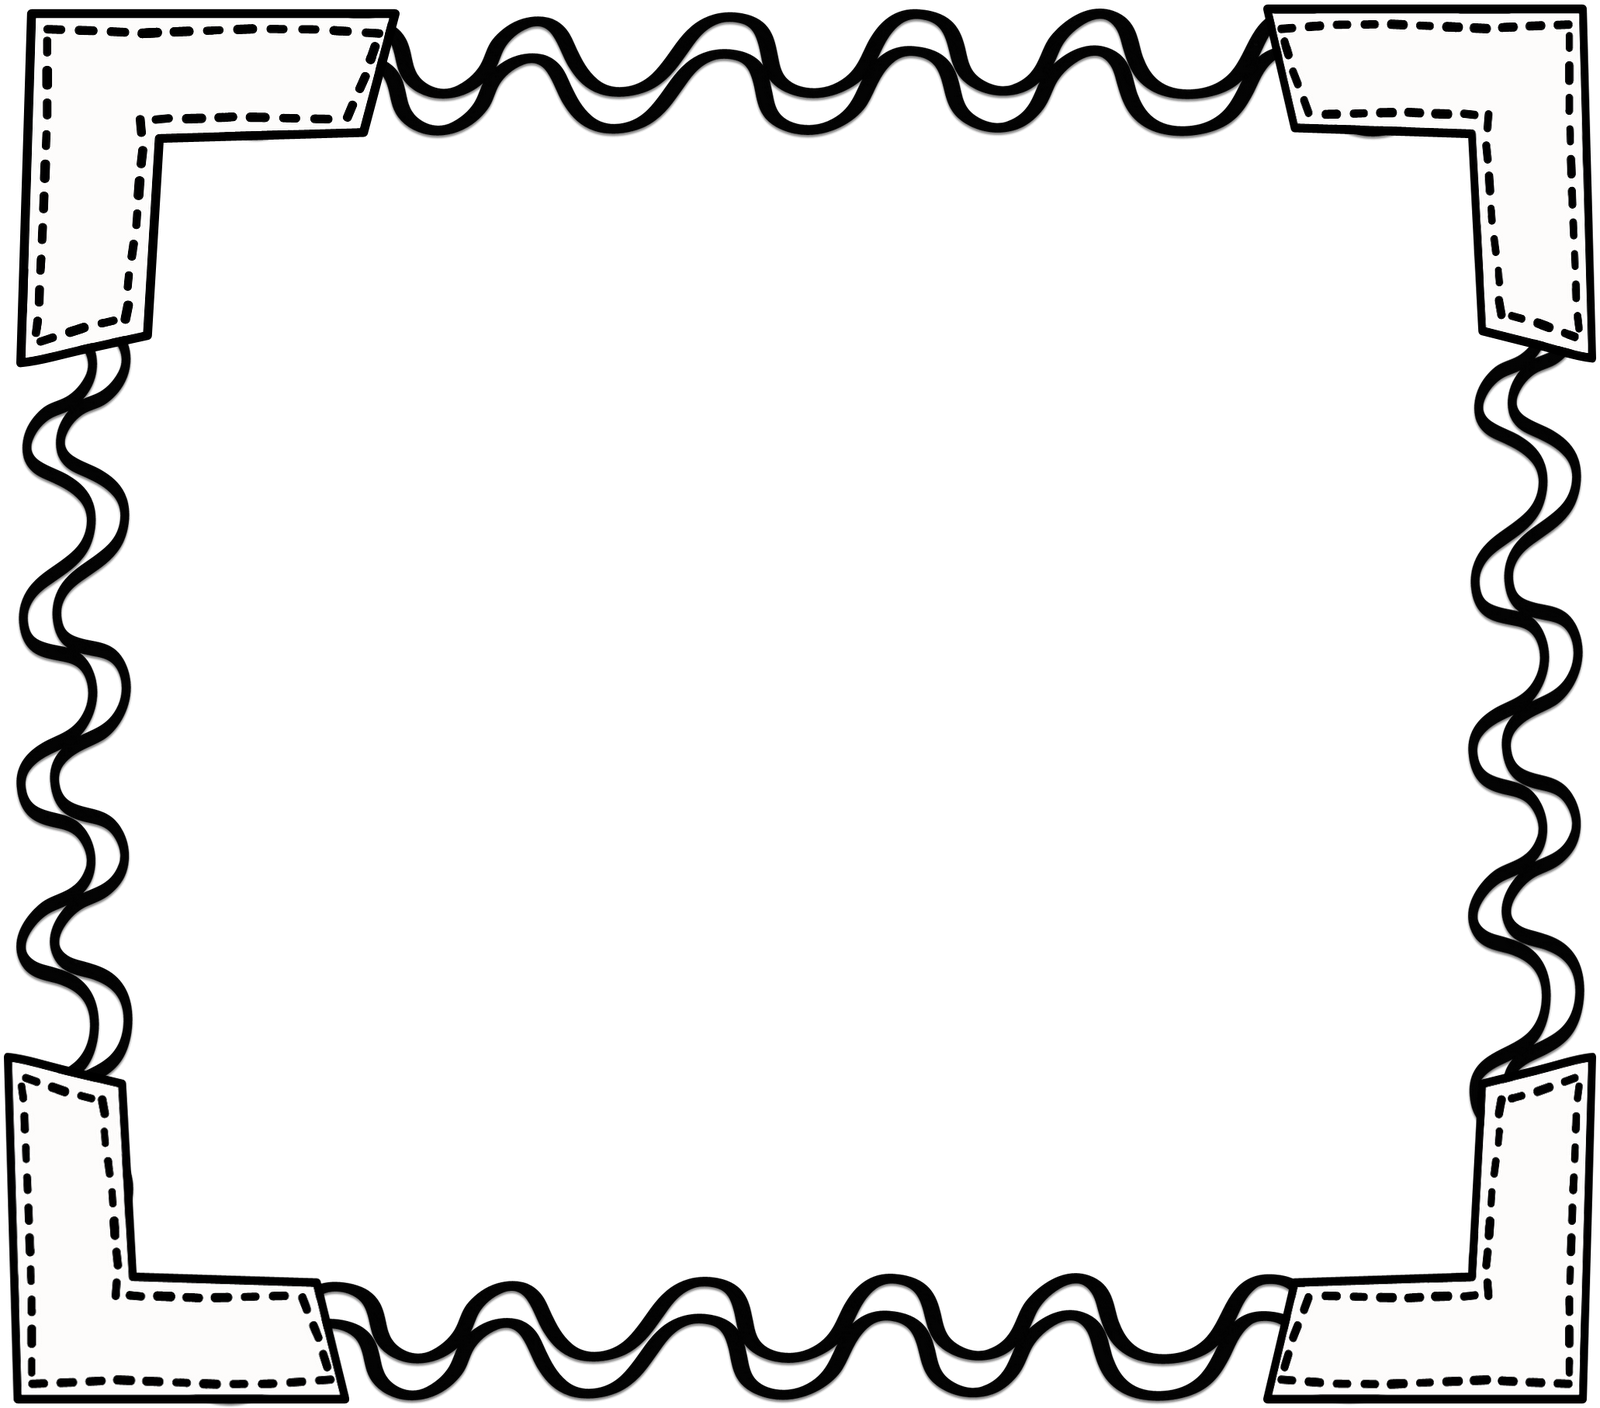 Borders clipart school image transparent download School Clip Art Borders Black And White - 1600x1408 - png | School ... image transparent download